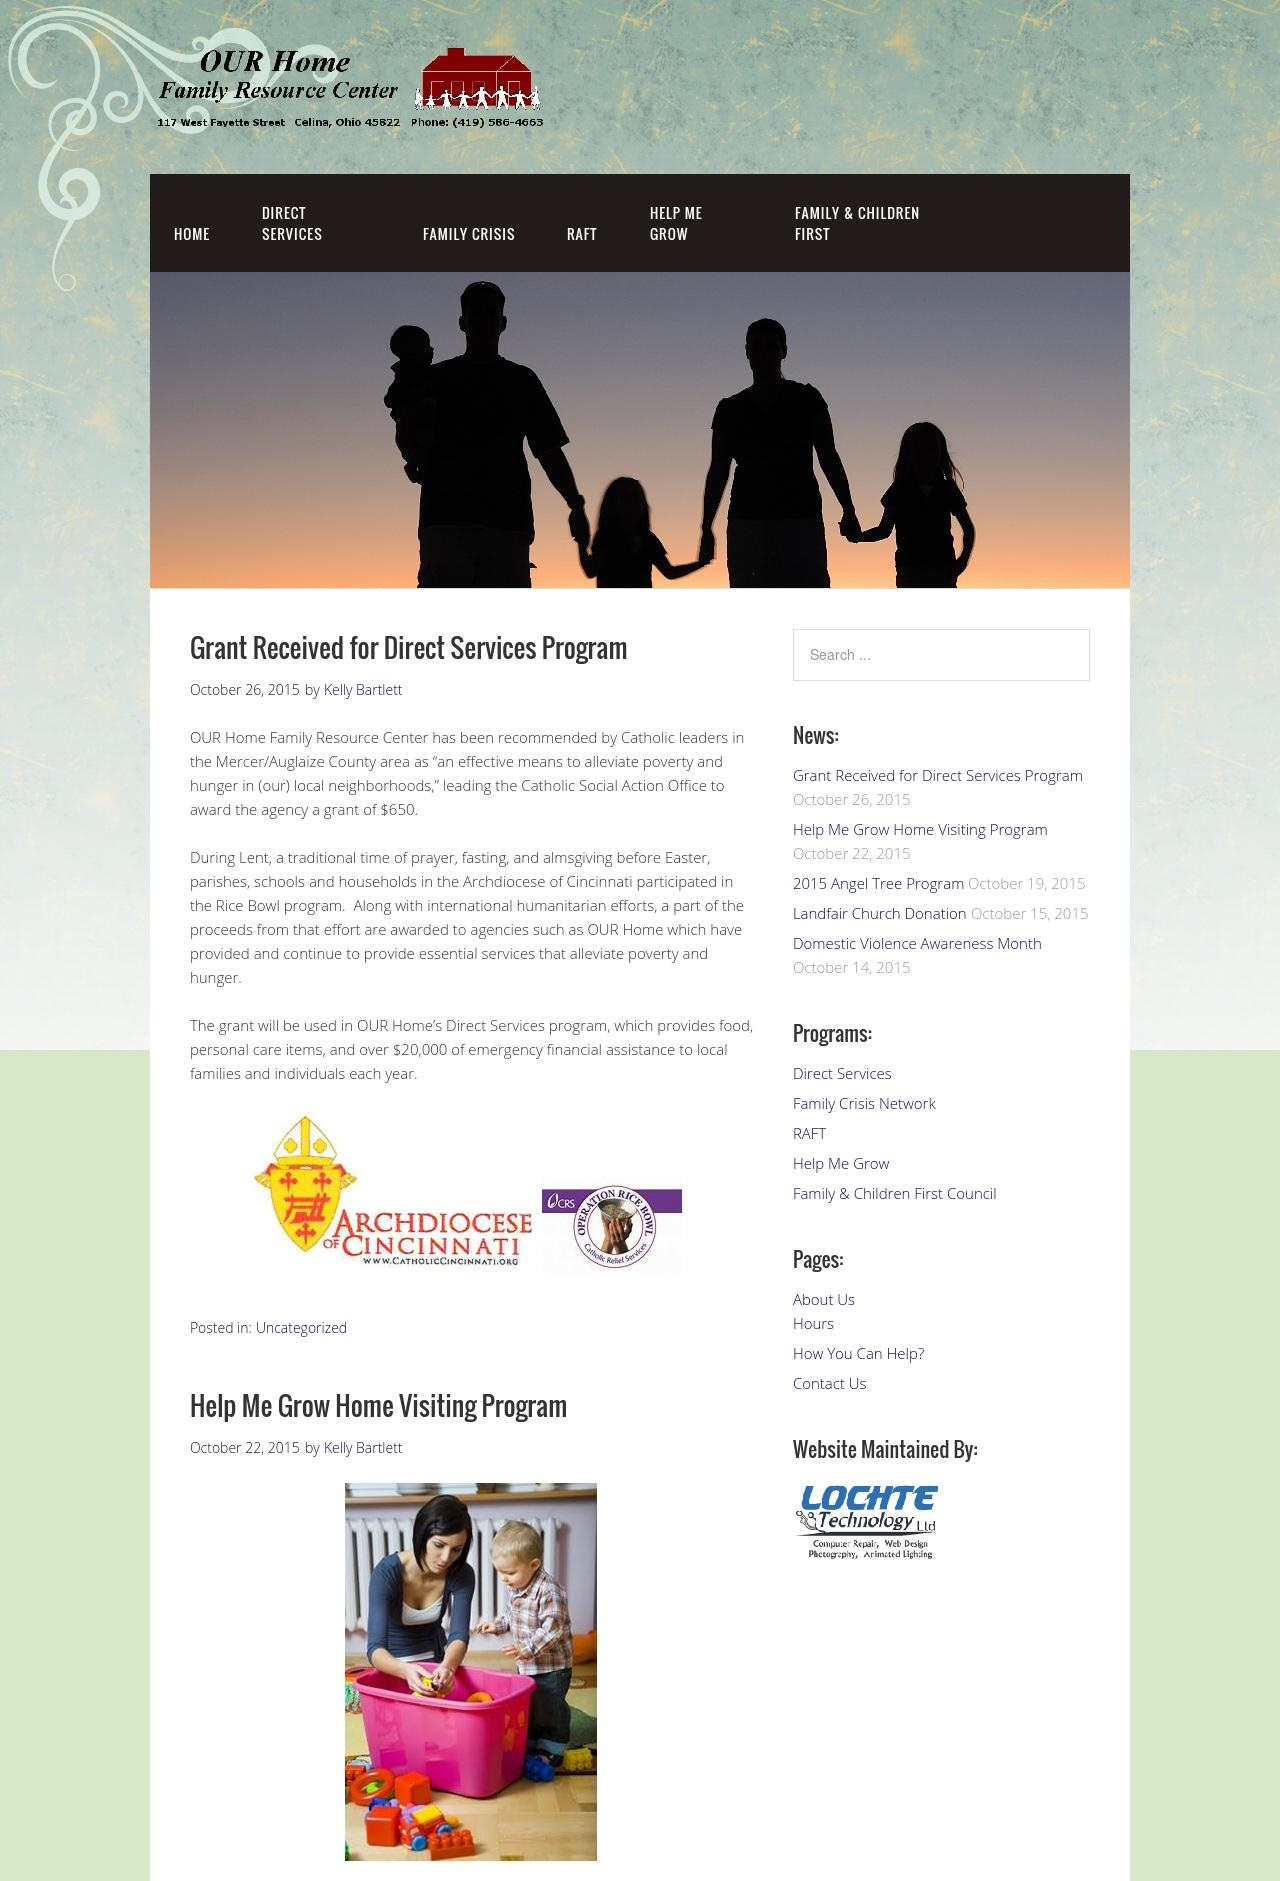 Our Home Family Resource Center